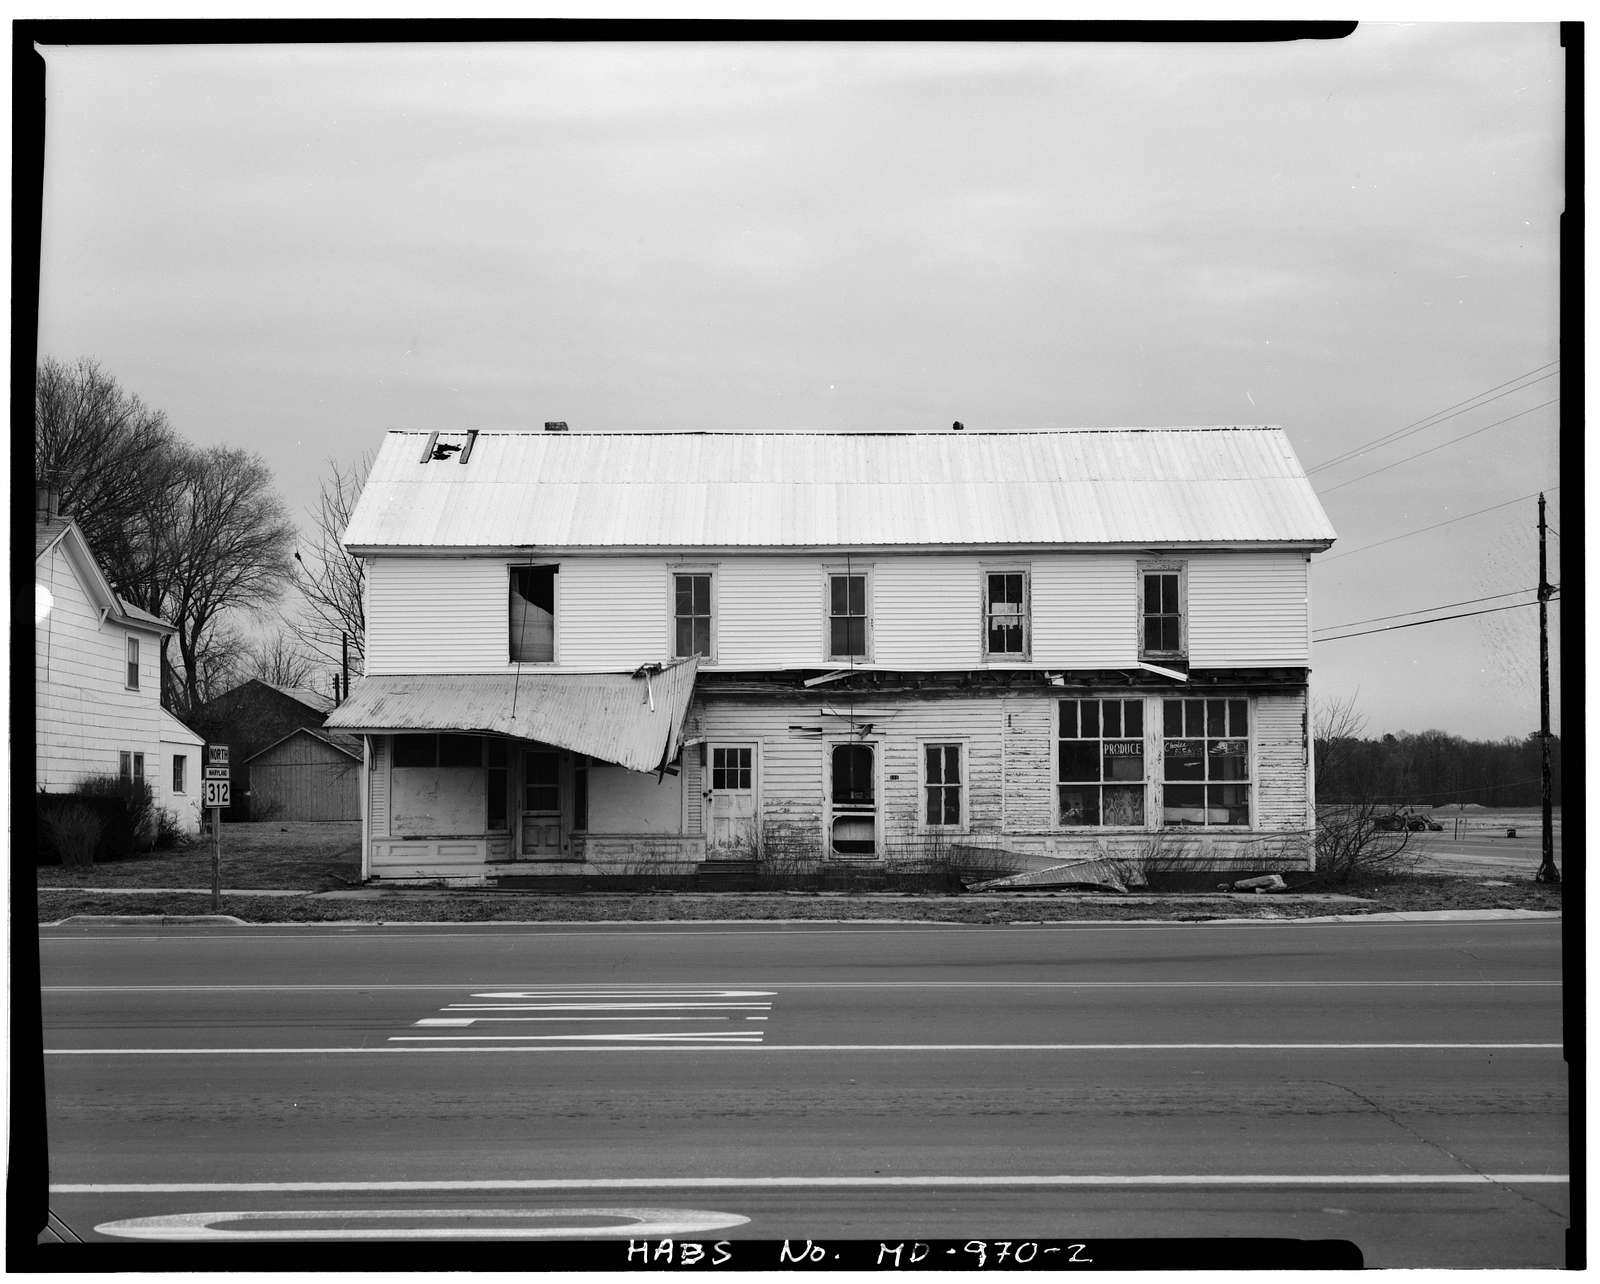 510 Central Avenue (Commercial Building), Ridgely, Caroline County, MD